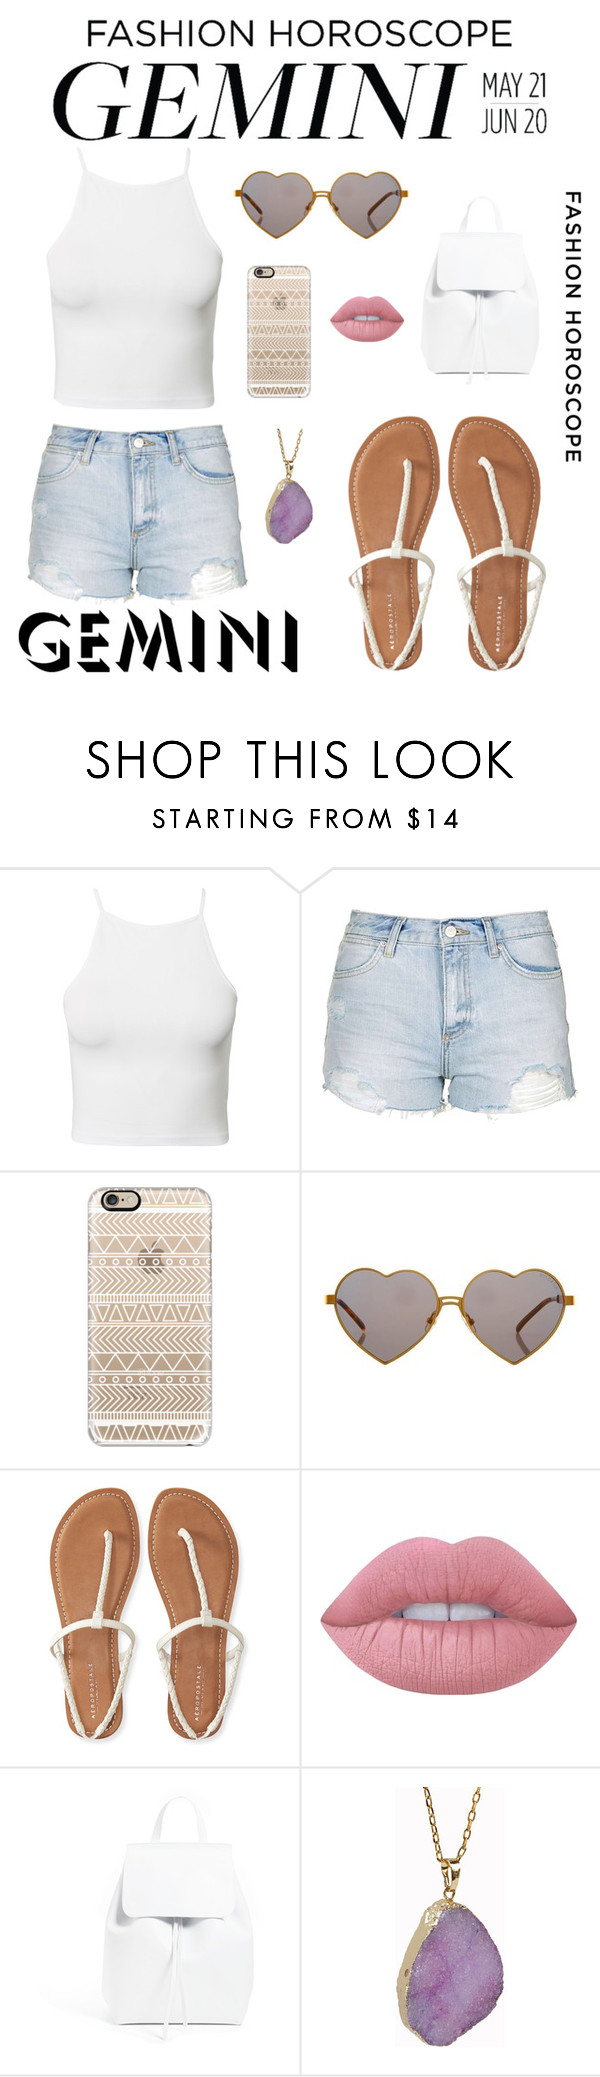 """""""Summer: Gemini Style"""" by zoepaigexo ❤ liked on Polyvore featuring NLY Trend, Topshop, Casetify, Wildfox, Aéropostale, Lime Crime, Mansur Gavriel, Helix & Felix, fashionhoroscope and stylehoroscope"""